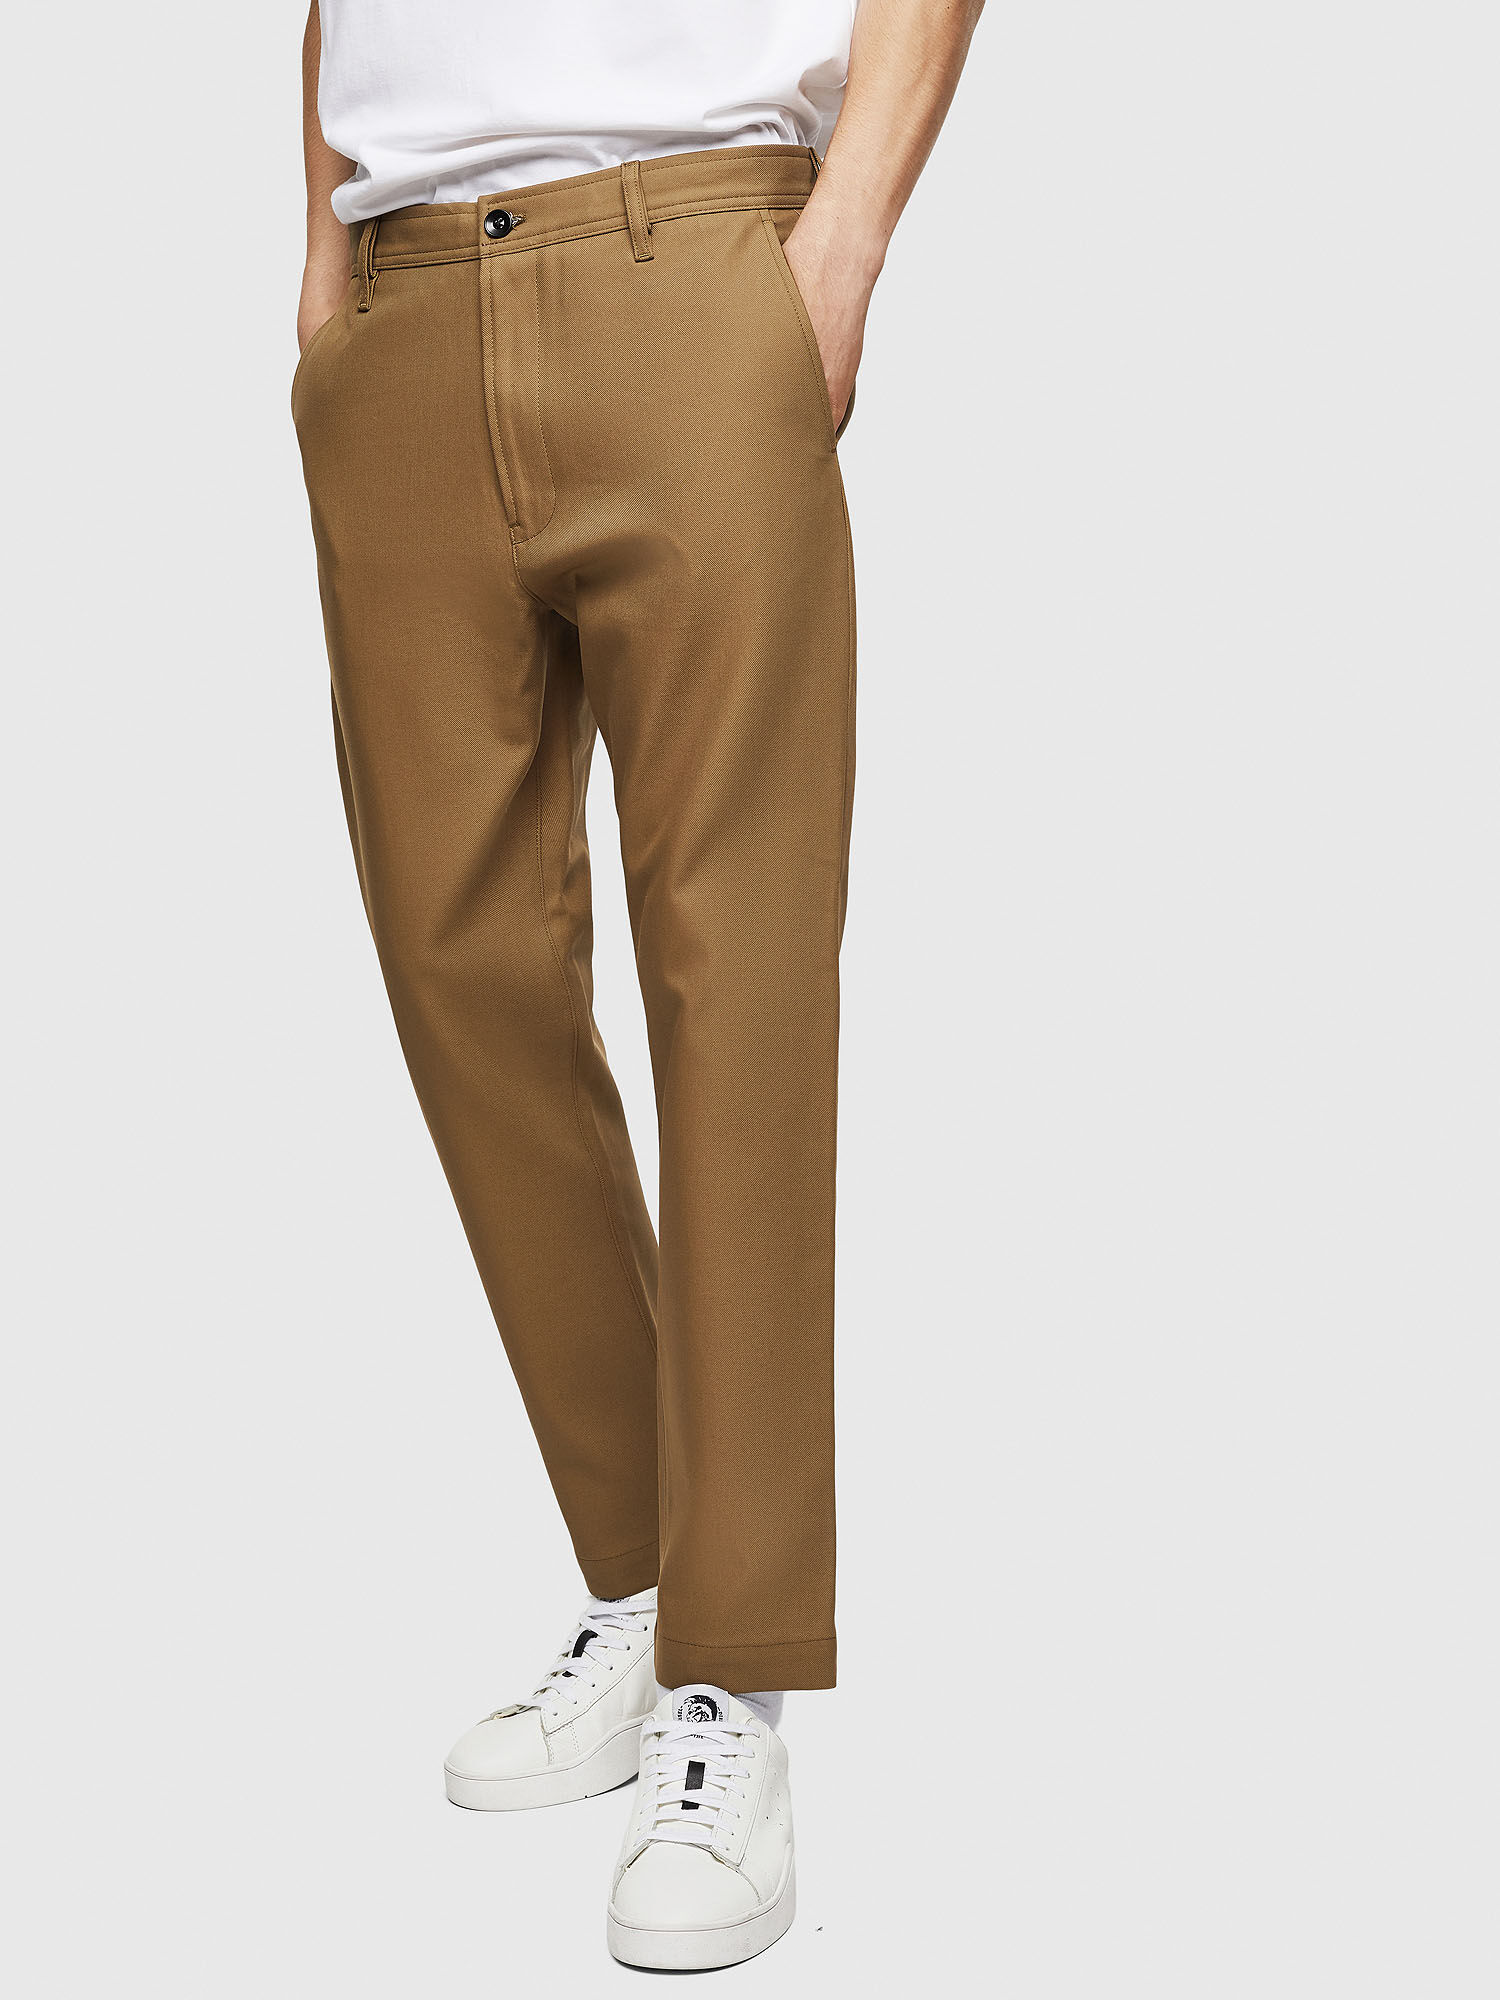 Chino pants in cavalry twill